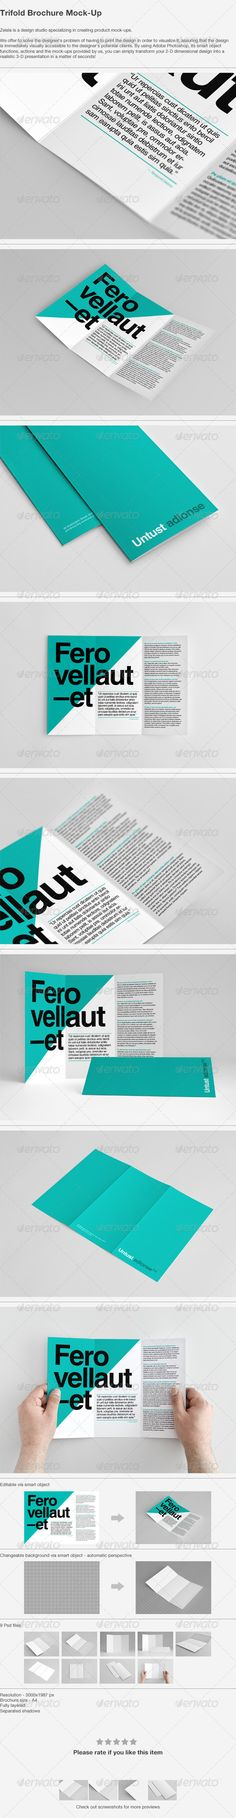 Buy Trifold Brochure Mock-Up by Zeisla on GraphicRiver. Features 9 Psd files Brochure size – Editable via smart object Resolution – Changeable background Update. Brochure Mockup, Brochure Design, Brochure Template, Mockup Photoshop, Graphic Design Templates, Business Flyer Templates, Business Card Logo, Tri Fold, Brochures